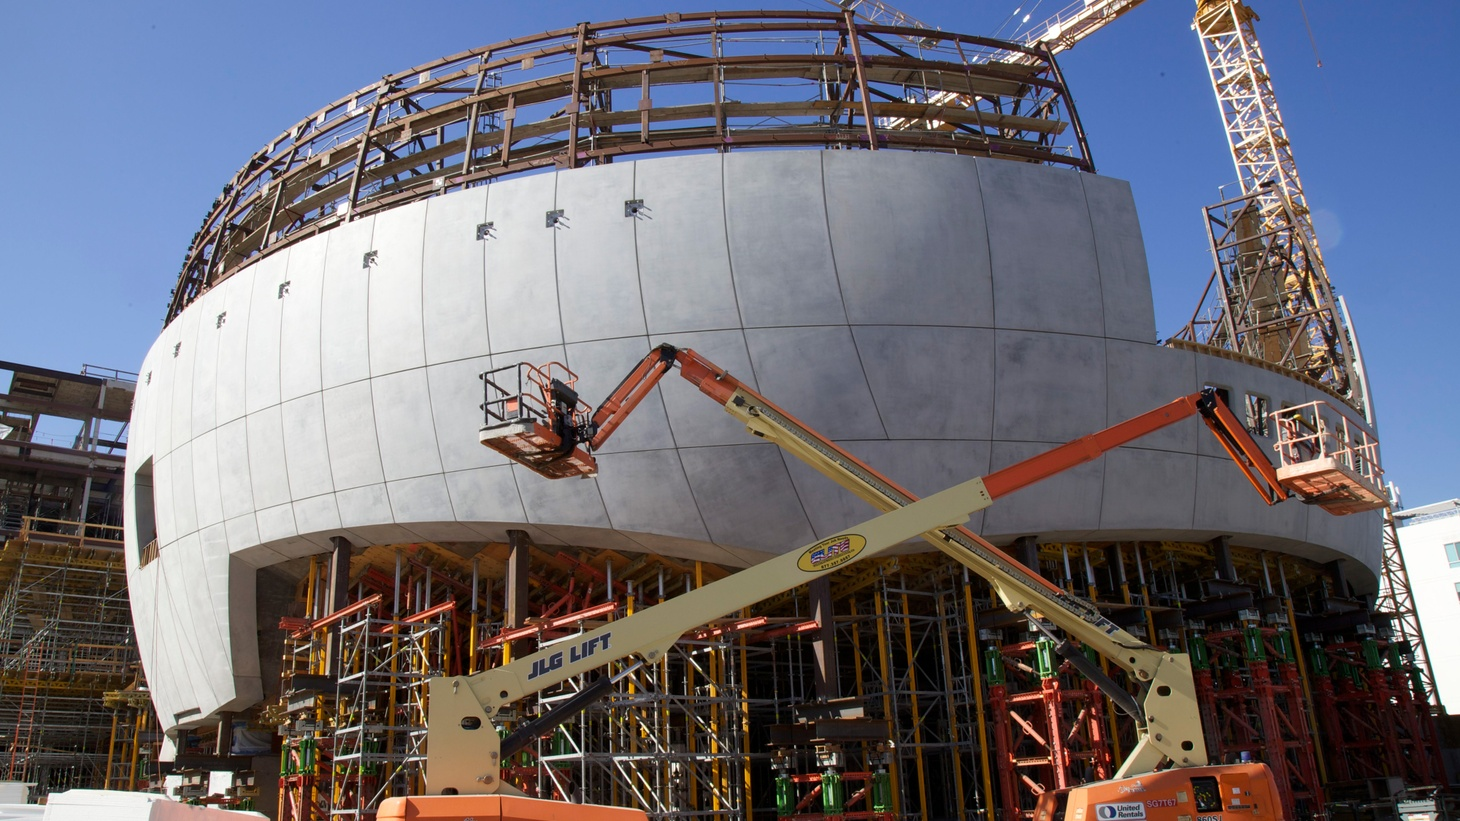 It's been a long time coming, and riddled with enough drama to fill a Hollywood movie. But today, the still-under construction Academy of Motion Picture Arts and Sciences Museum opened its doors for a close-up.